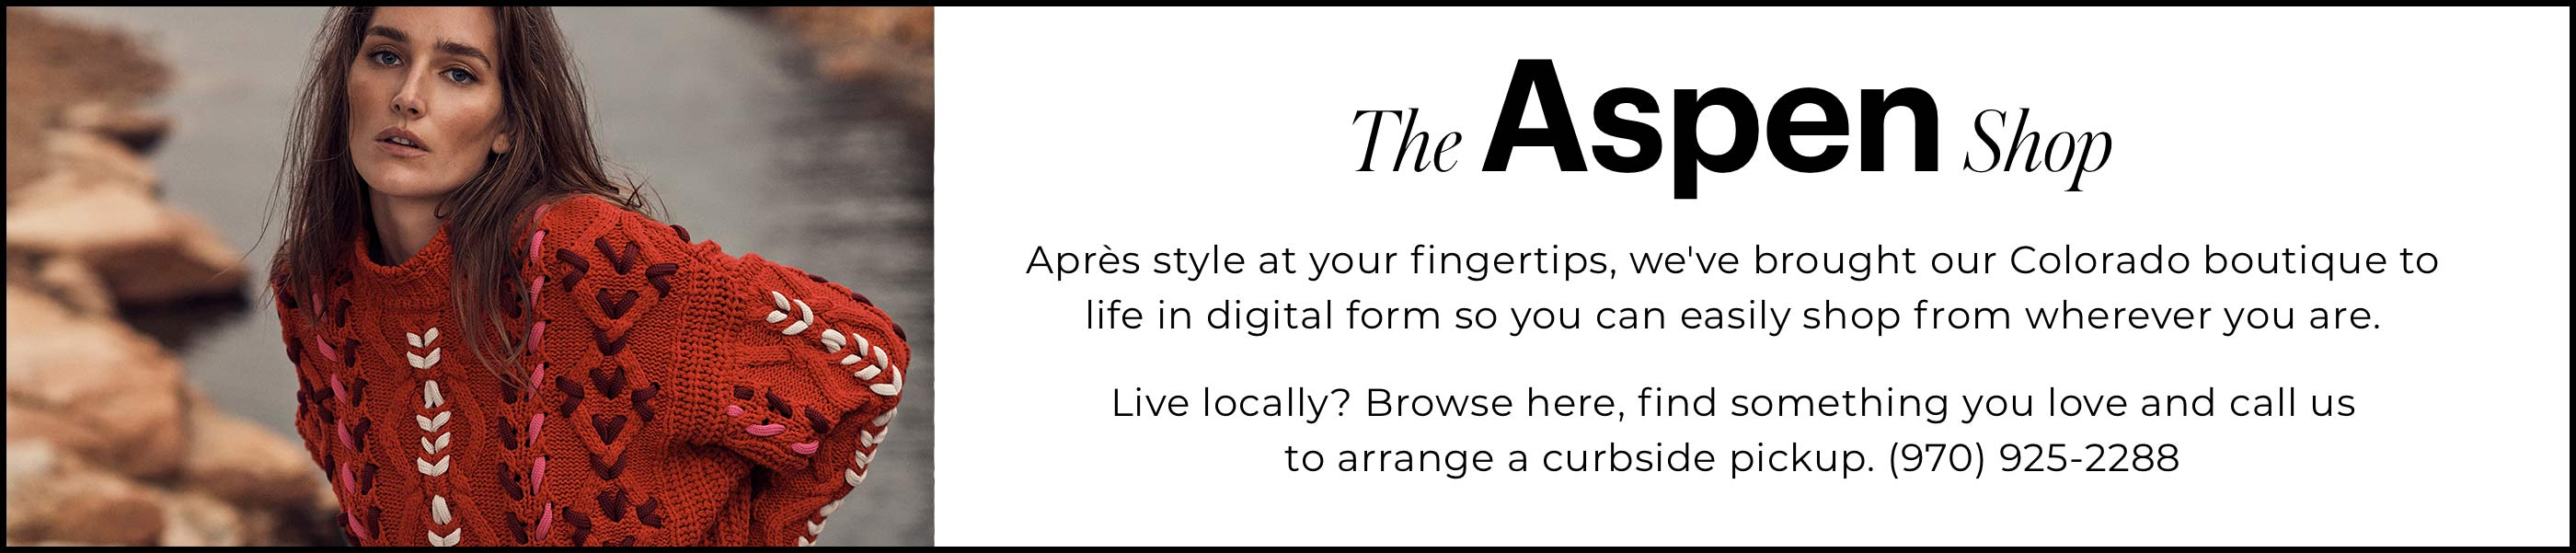 """The Aspen Shop Après style at your fingertips, we've brought our Colorado boutique to life in digital form so you can easily shop from wherever you are.  Live locally? Browse here, find something you love and call us to arrange a curbside pickup. (970) 925-2288"""